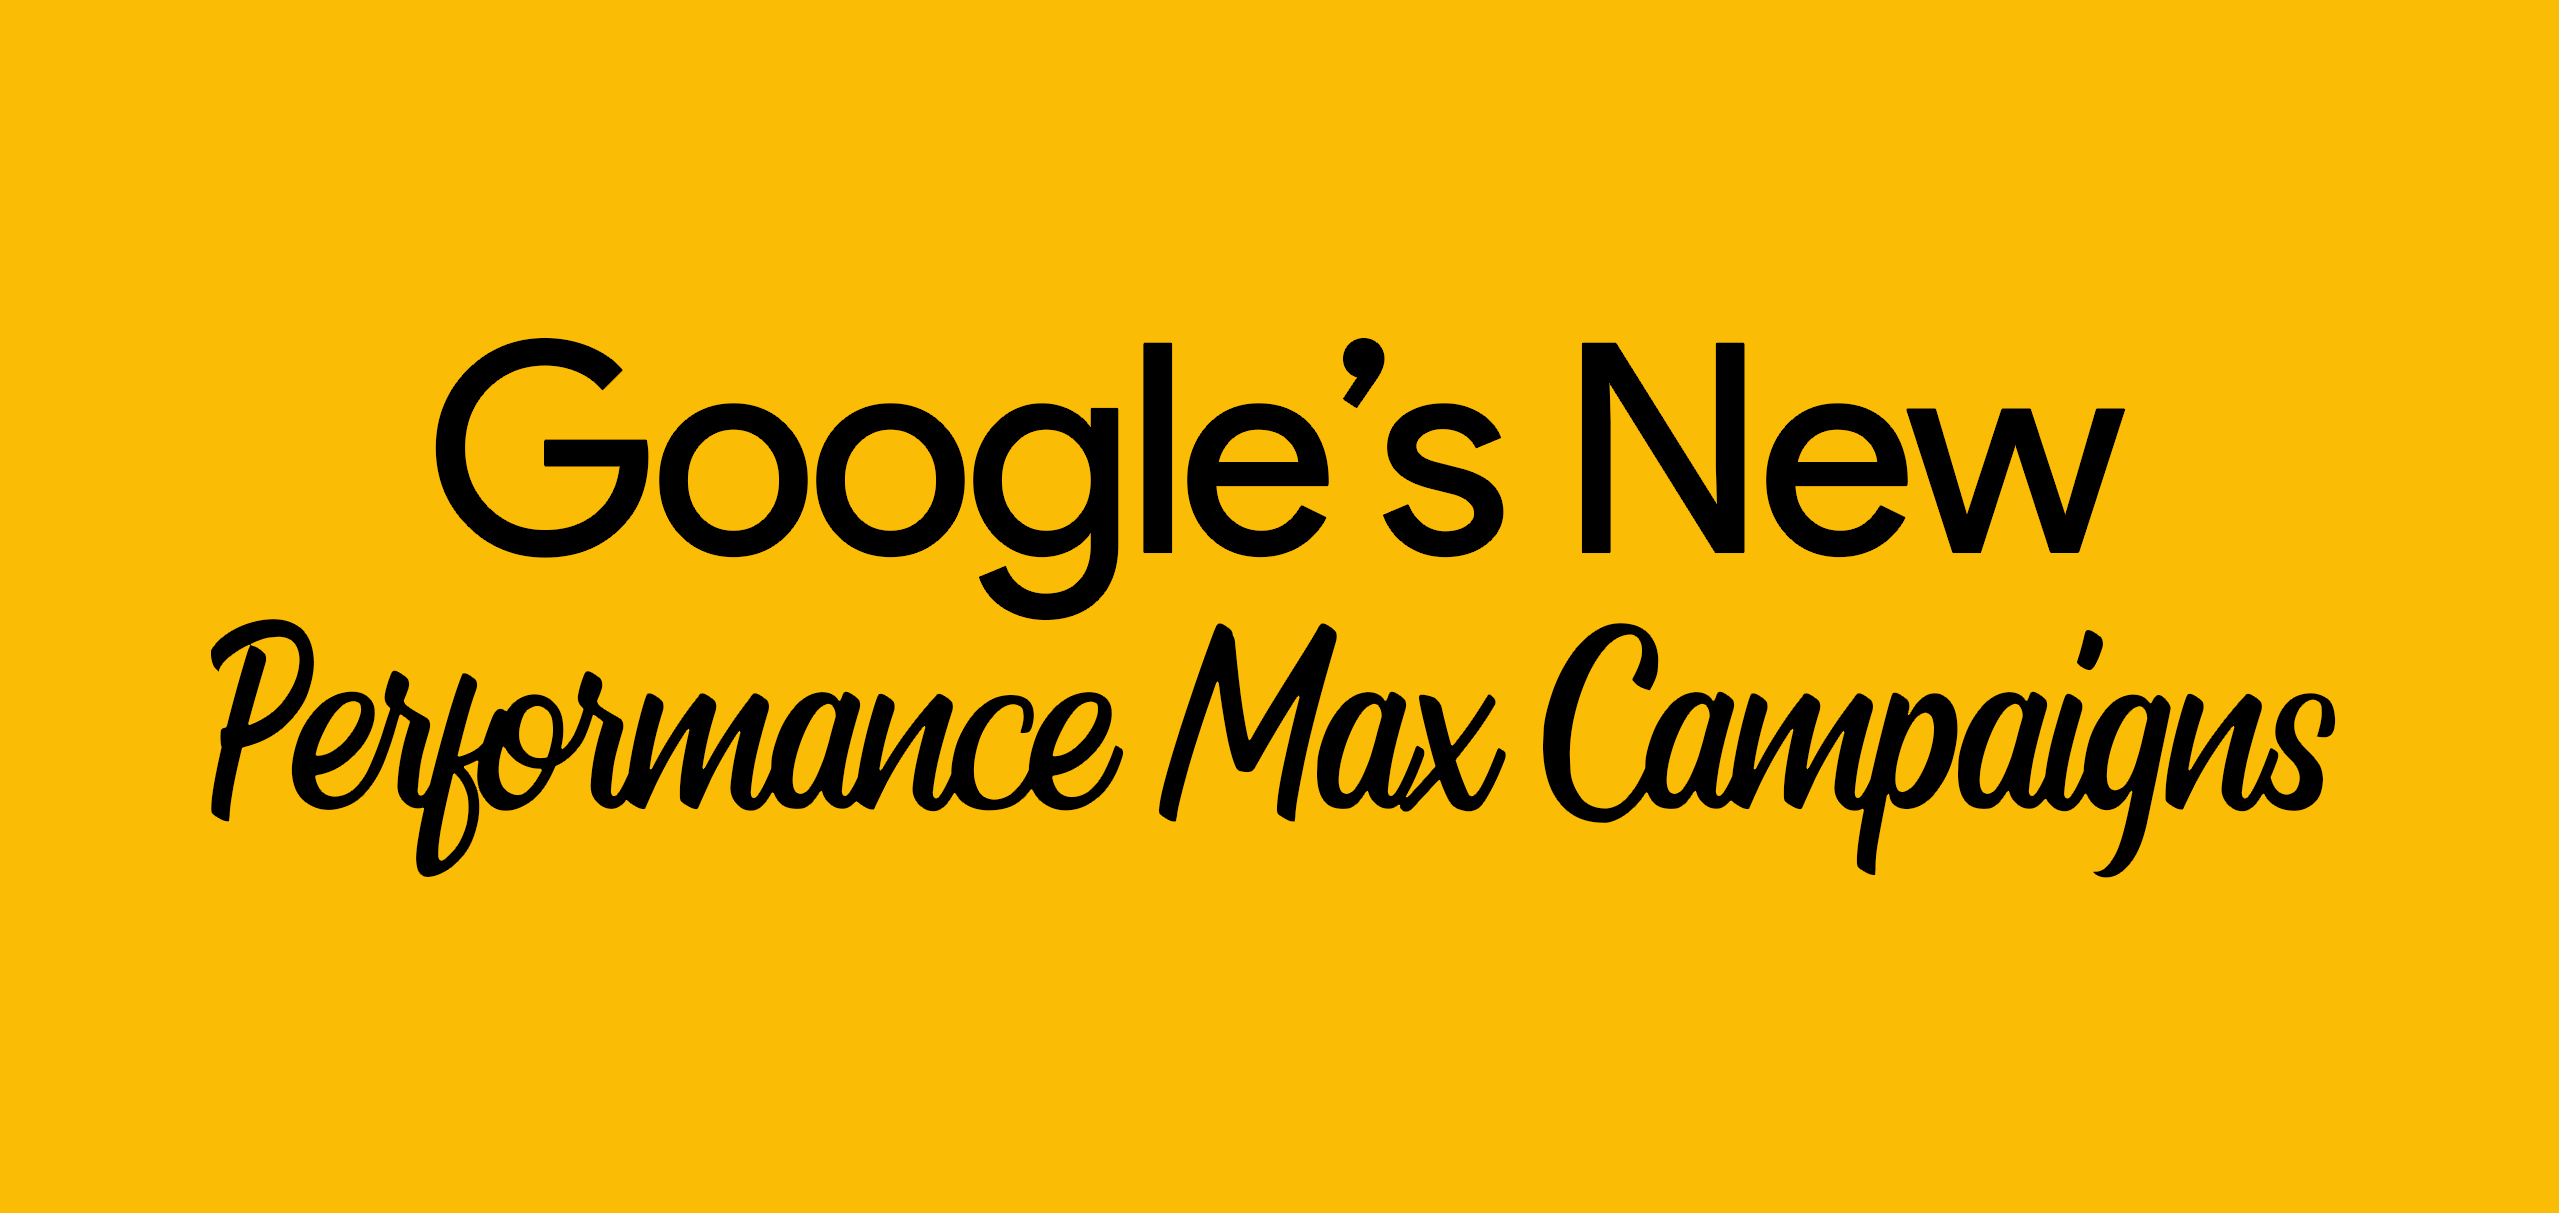 What do we know about Performance Max campaigns